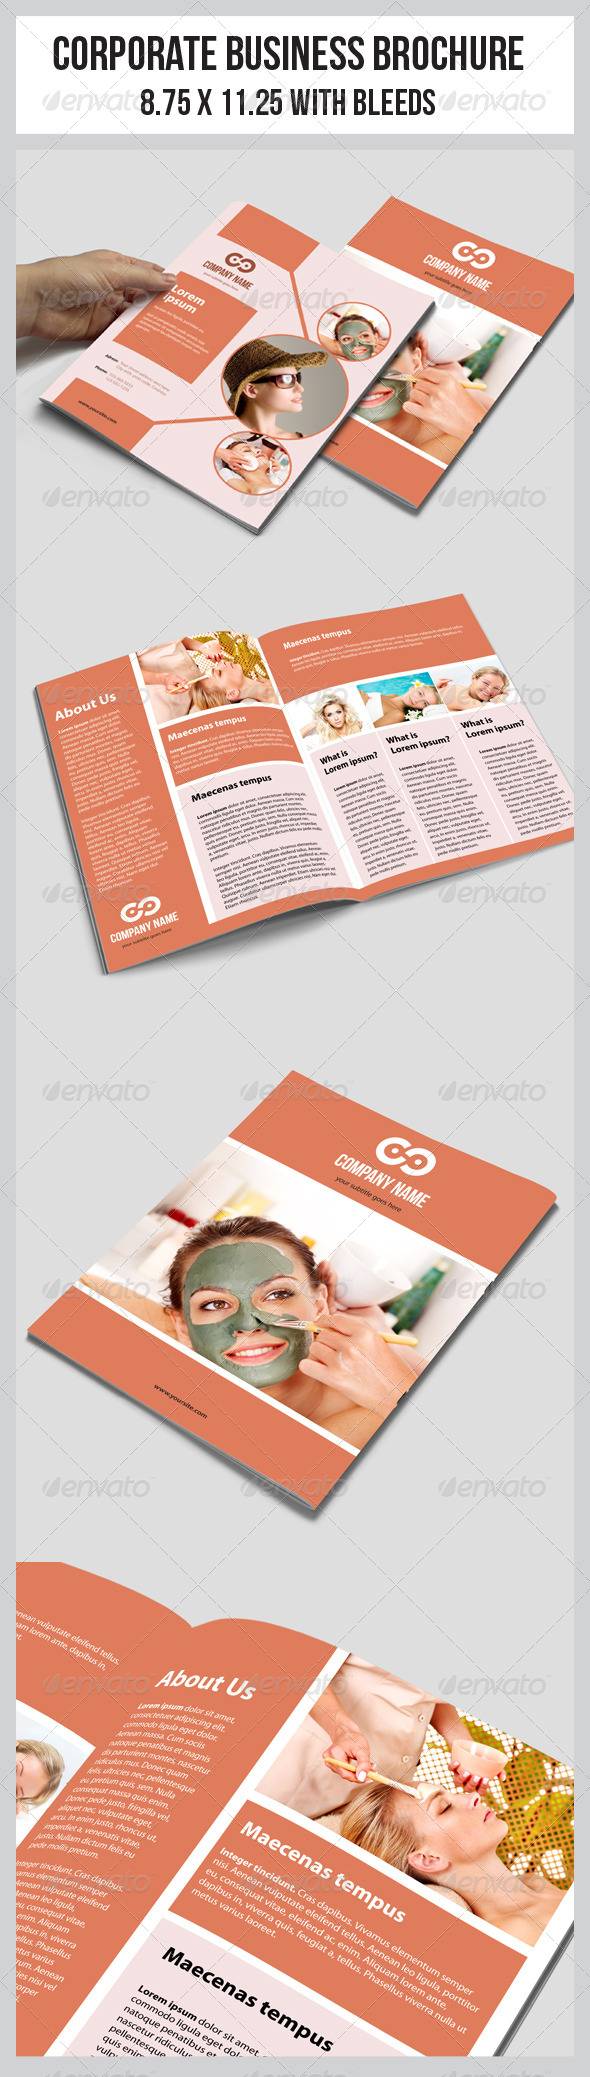 Multipurpose Business Brochure Template - Corporate Brochures